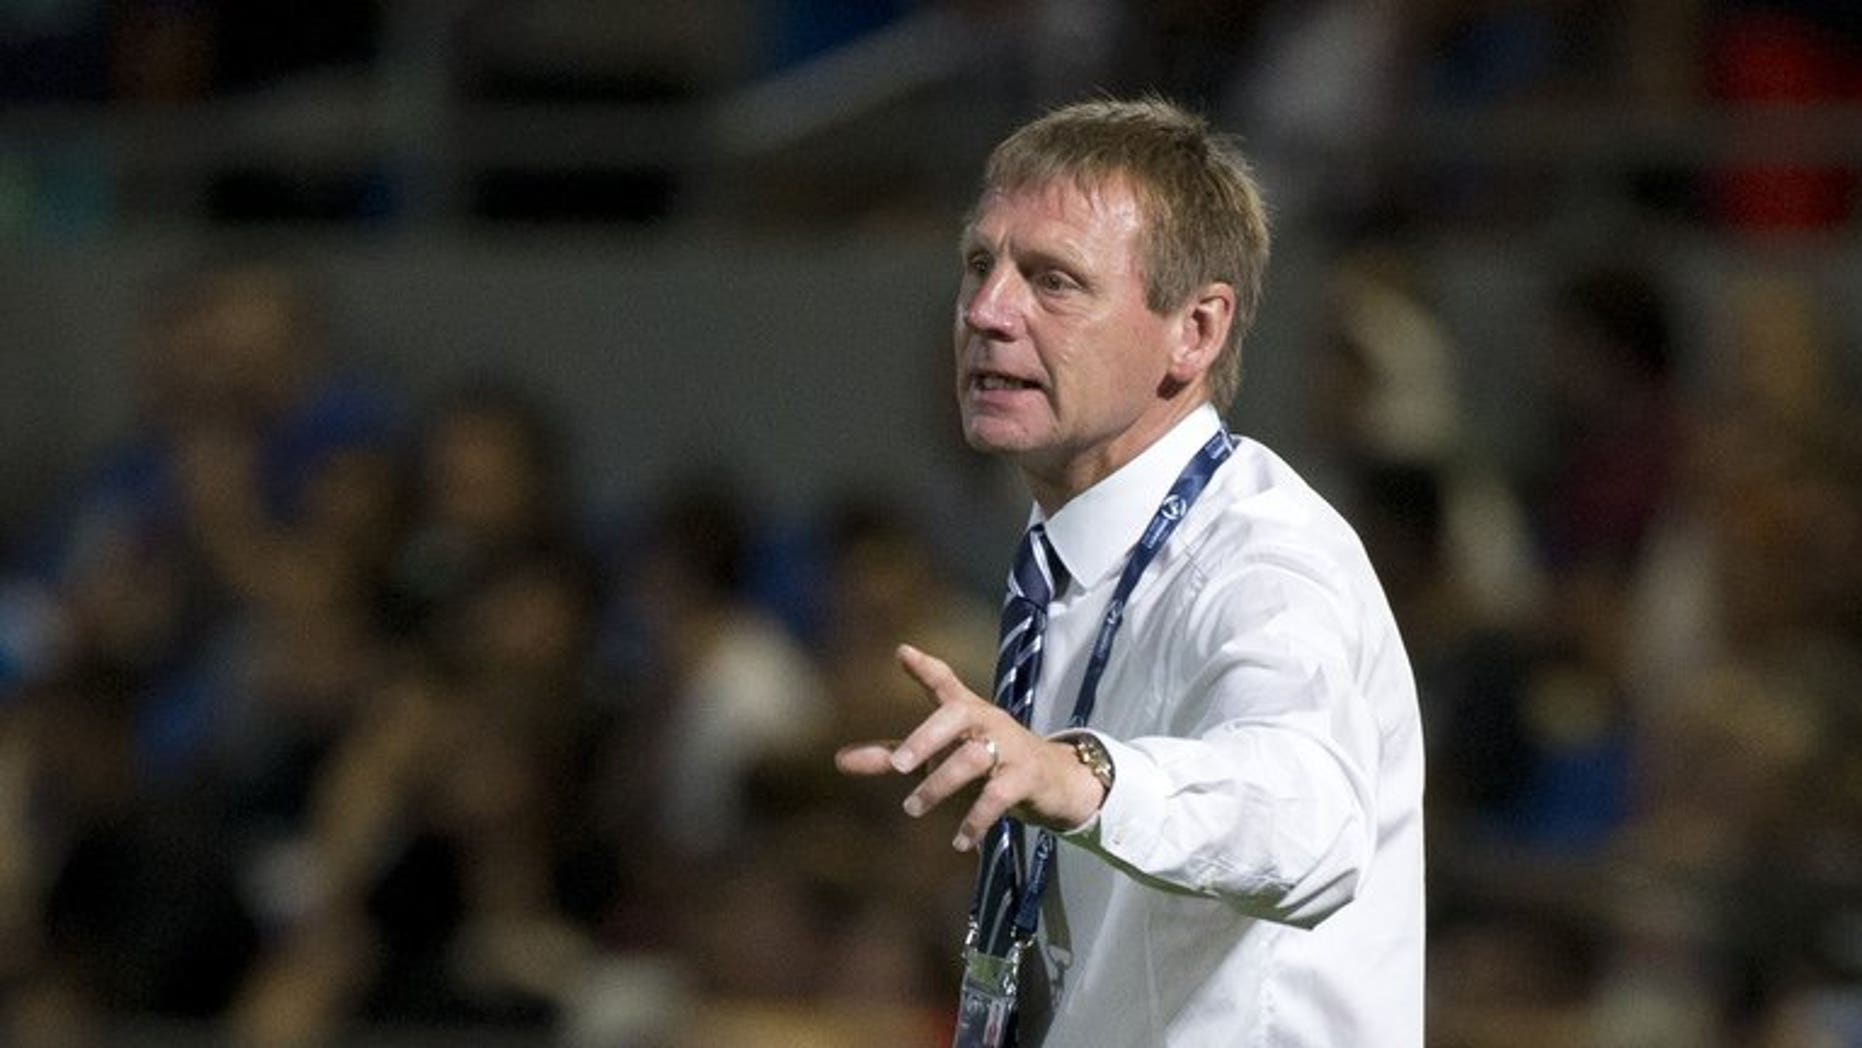 England's coach Stuart Pearce reacts during the 2013 UEFA U-21 Championship group A football match between England and Italy at Bloomfield Stadium in Tel Aviv on June 5, 2013. Pearce's reign as England Under-21 coach came to an end on Tuesday as it was announced he would not be offered a new contract following the side's humiliating first round exit at the European championships this month.